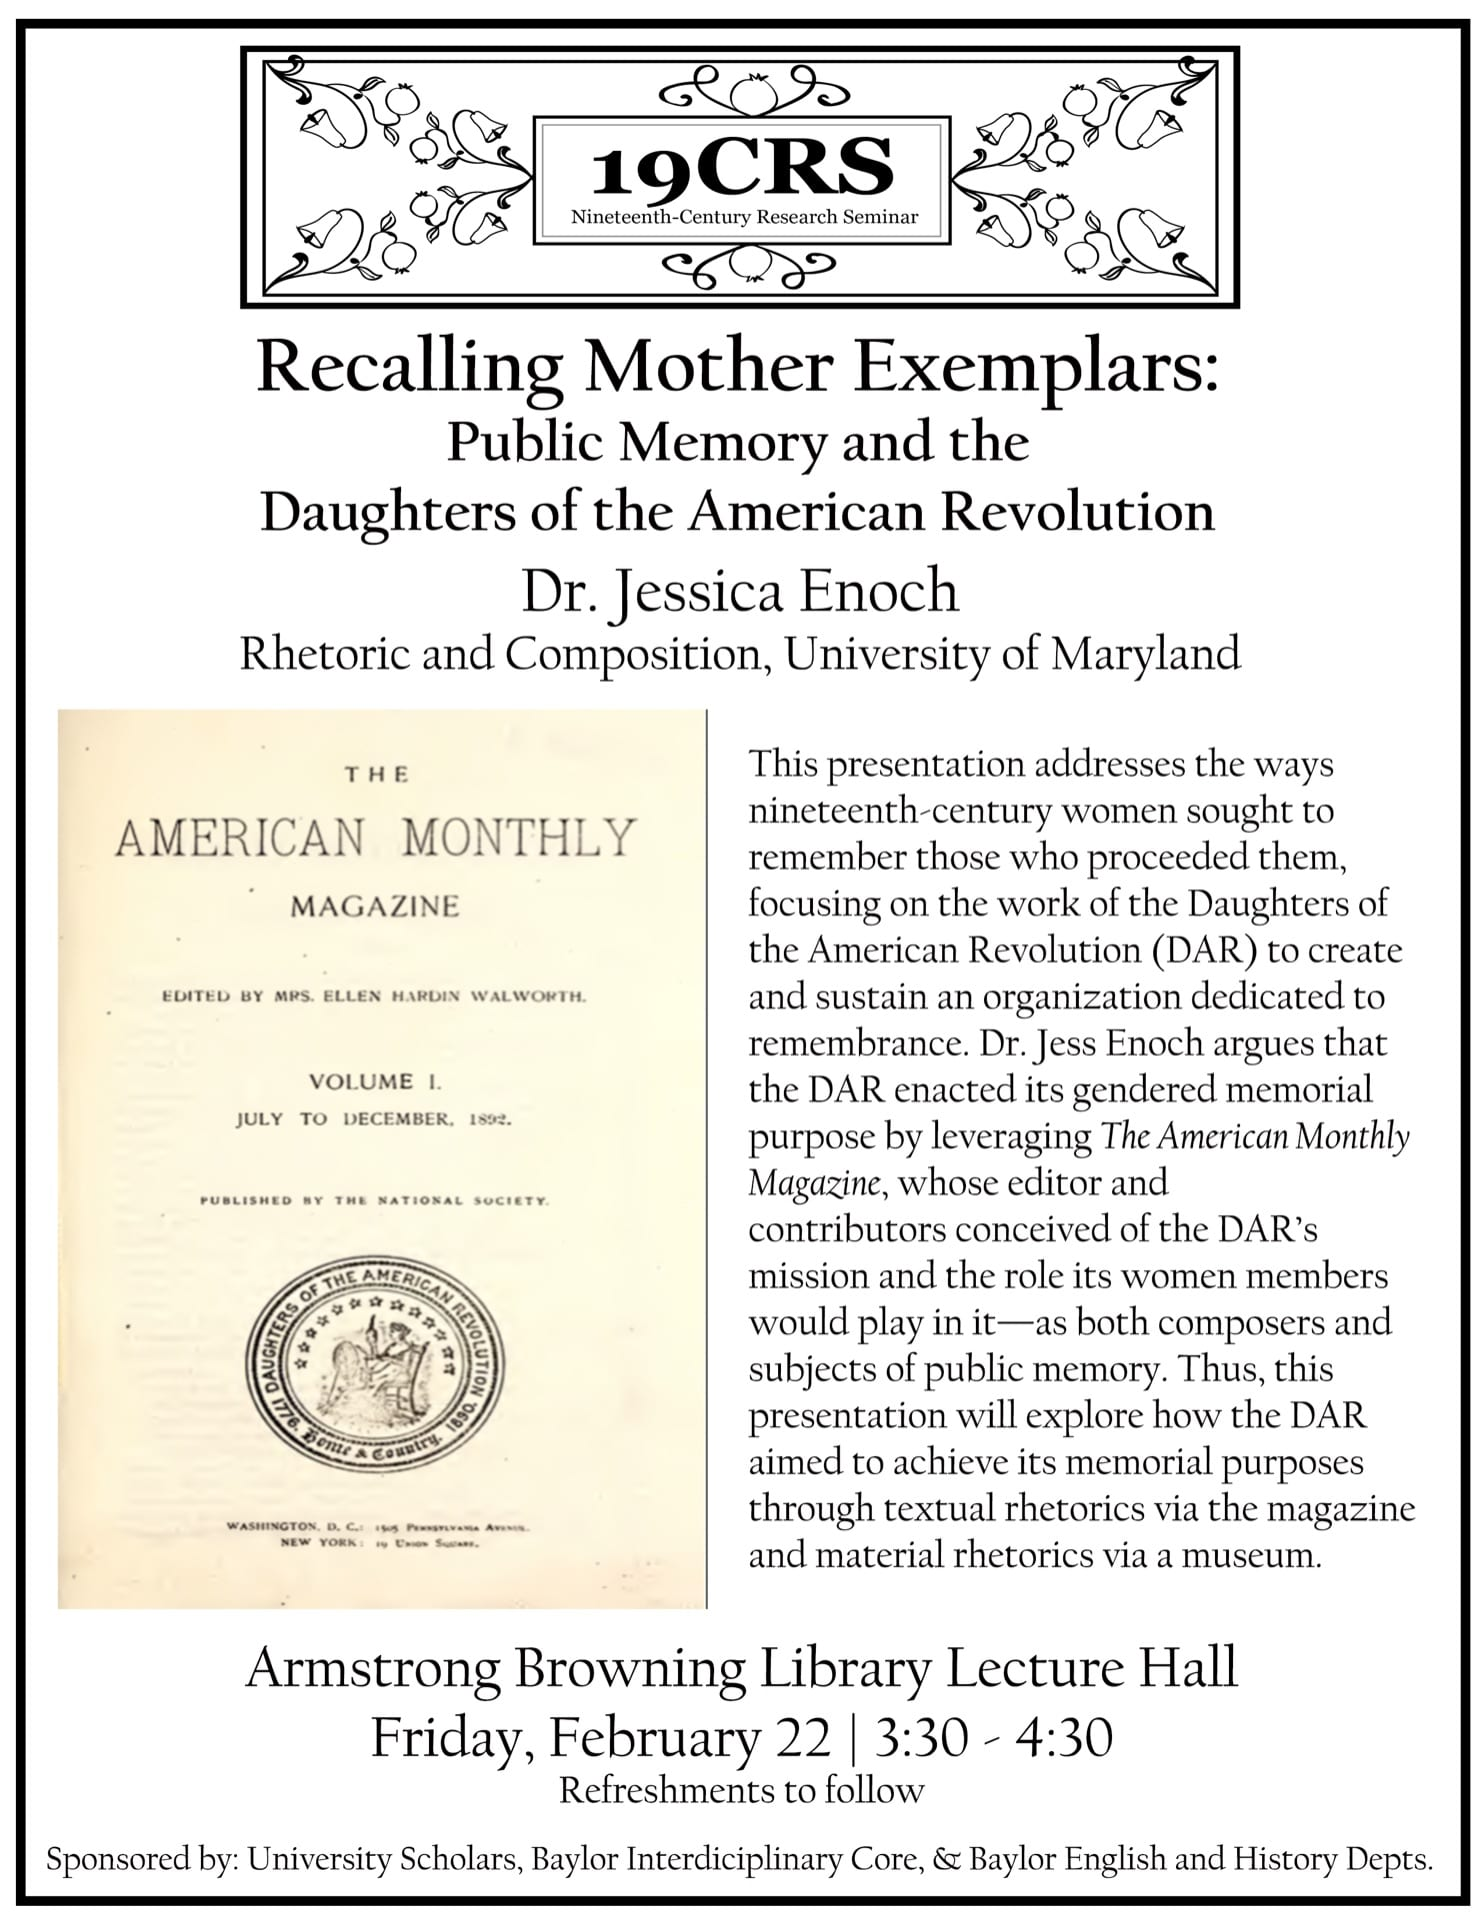 Flyer for Jess Enoch's talk. It includes an image of a title page from American Monthly Magazine.